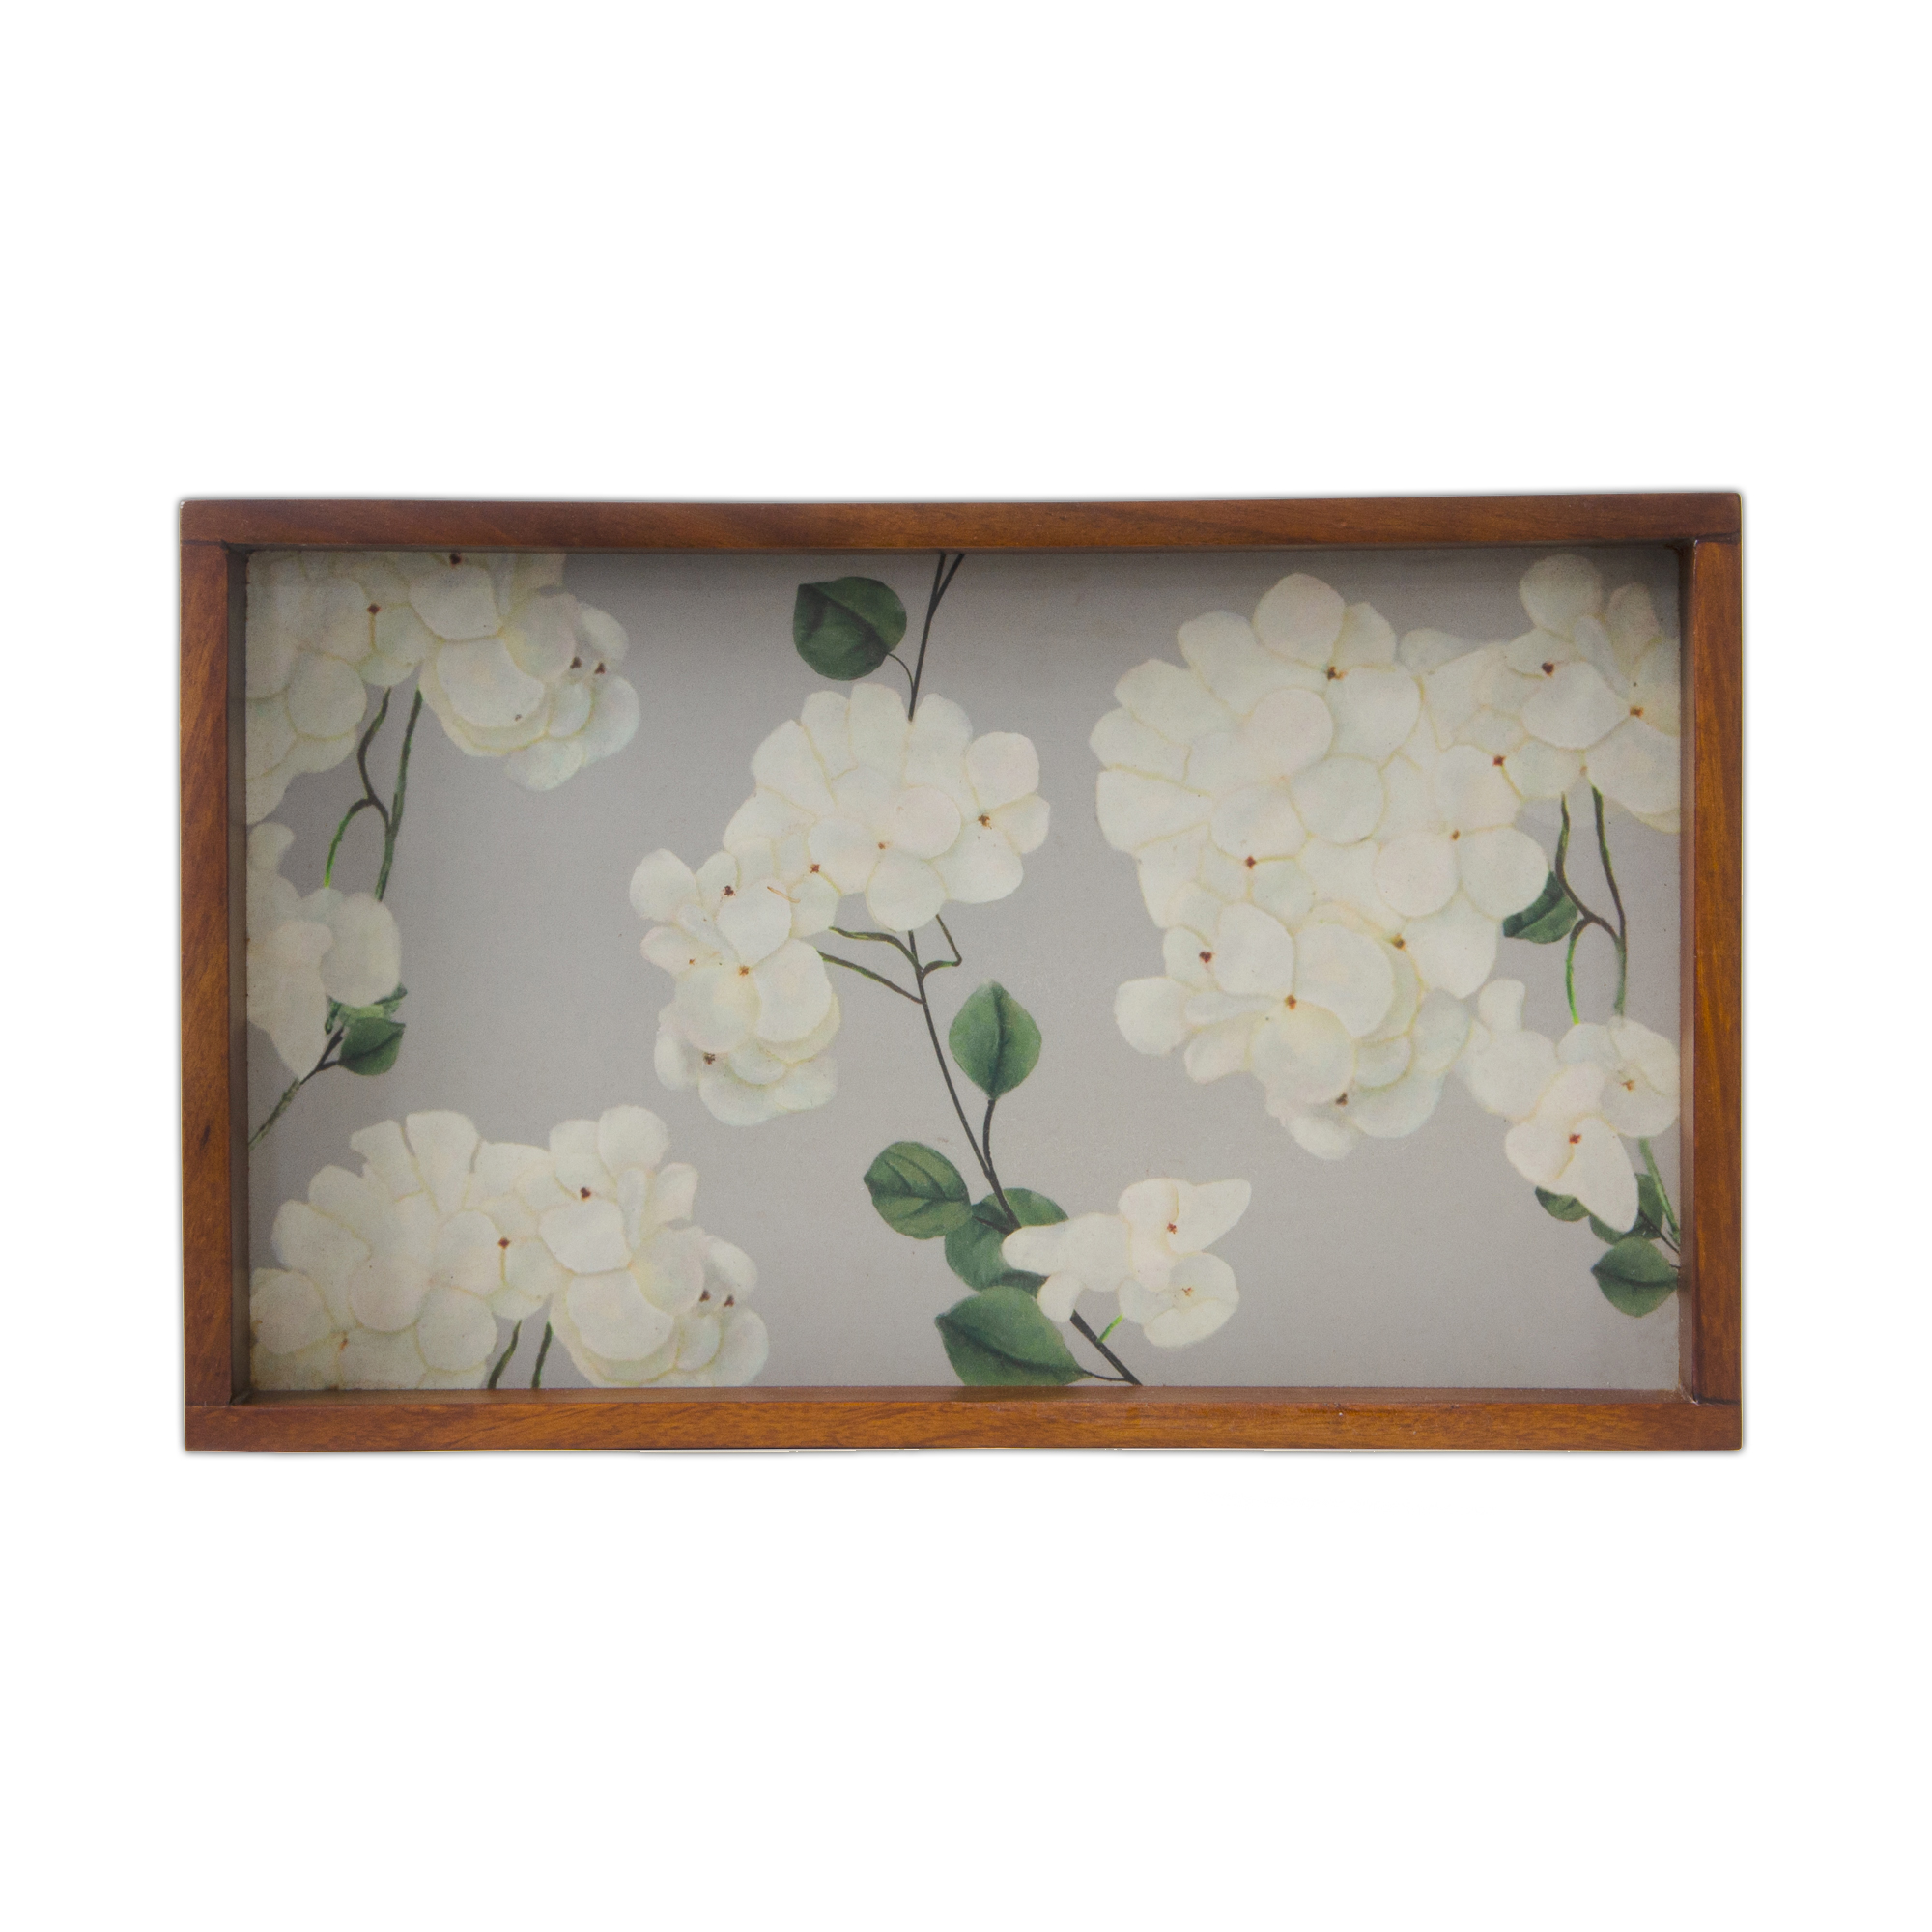 Printed Wooden Tray - Chrysanthemums & Sparrows Breeze